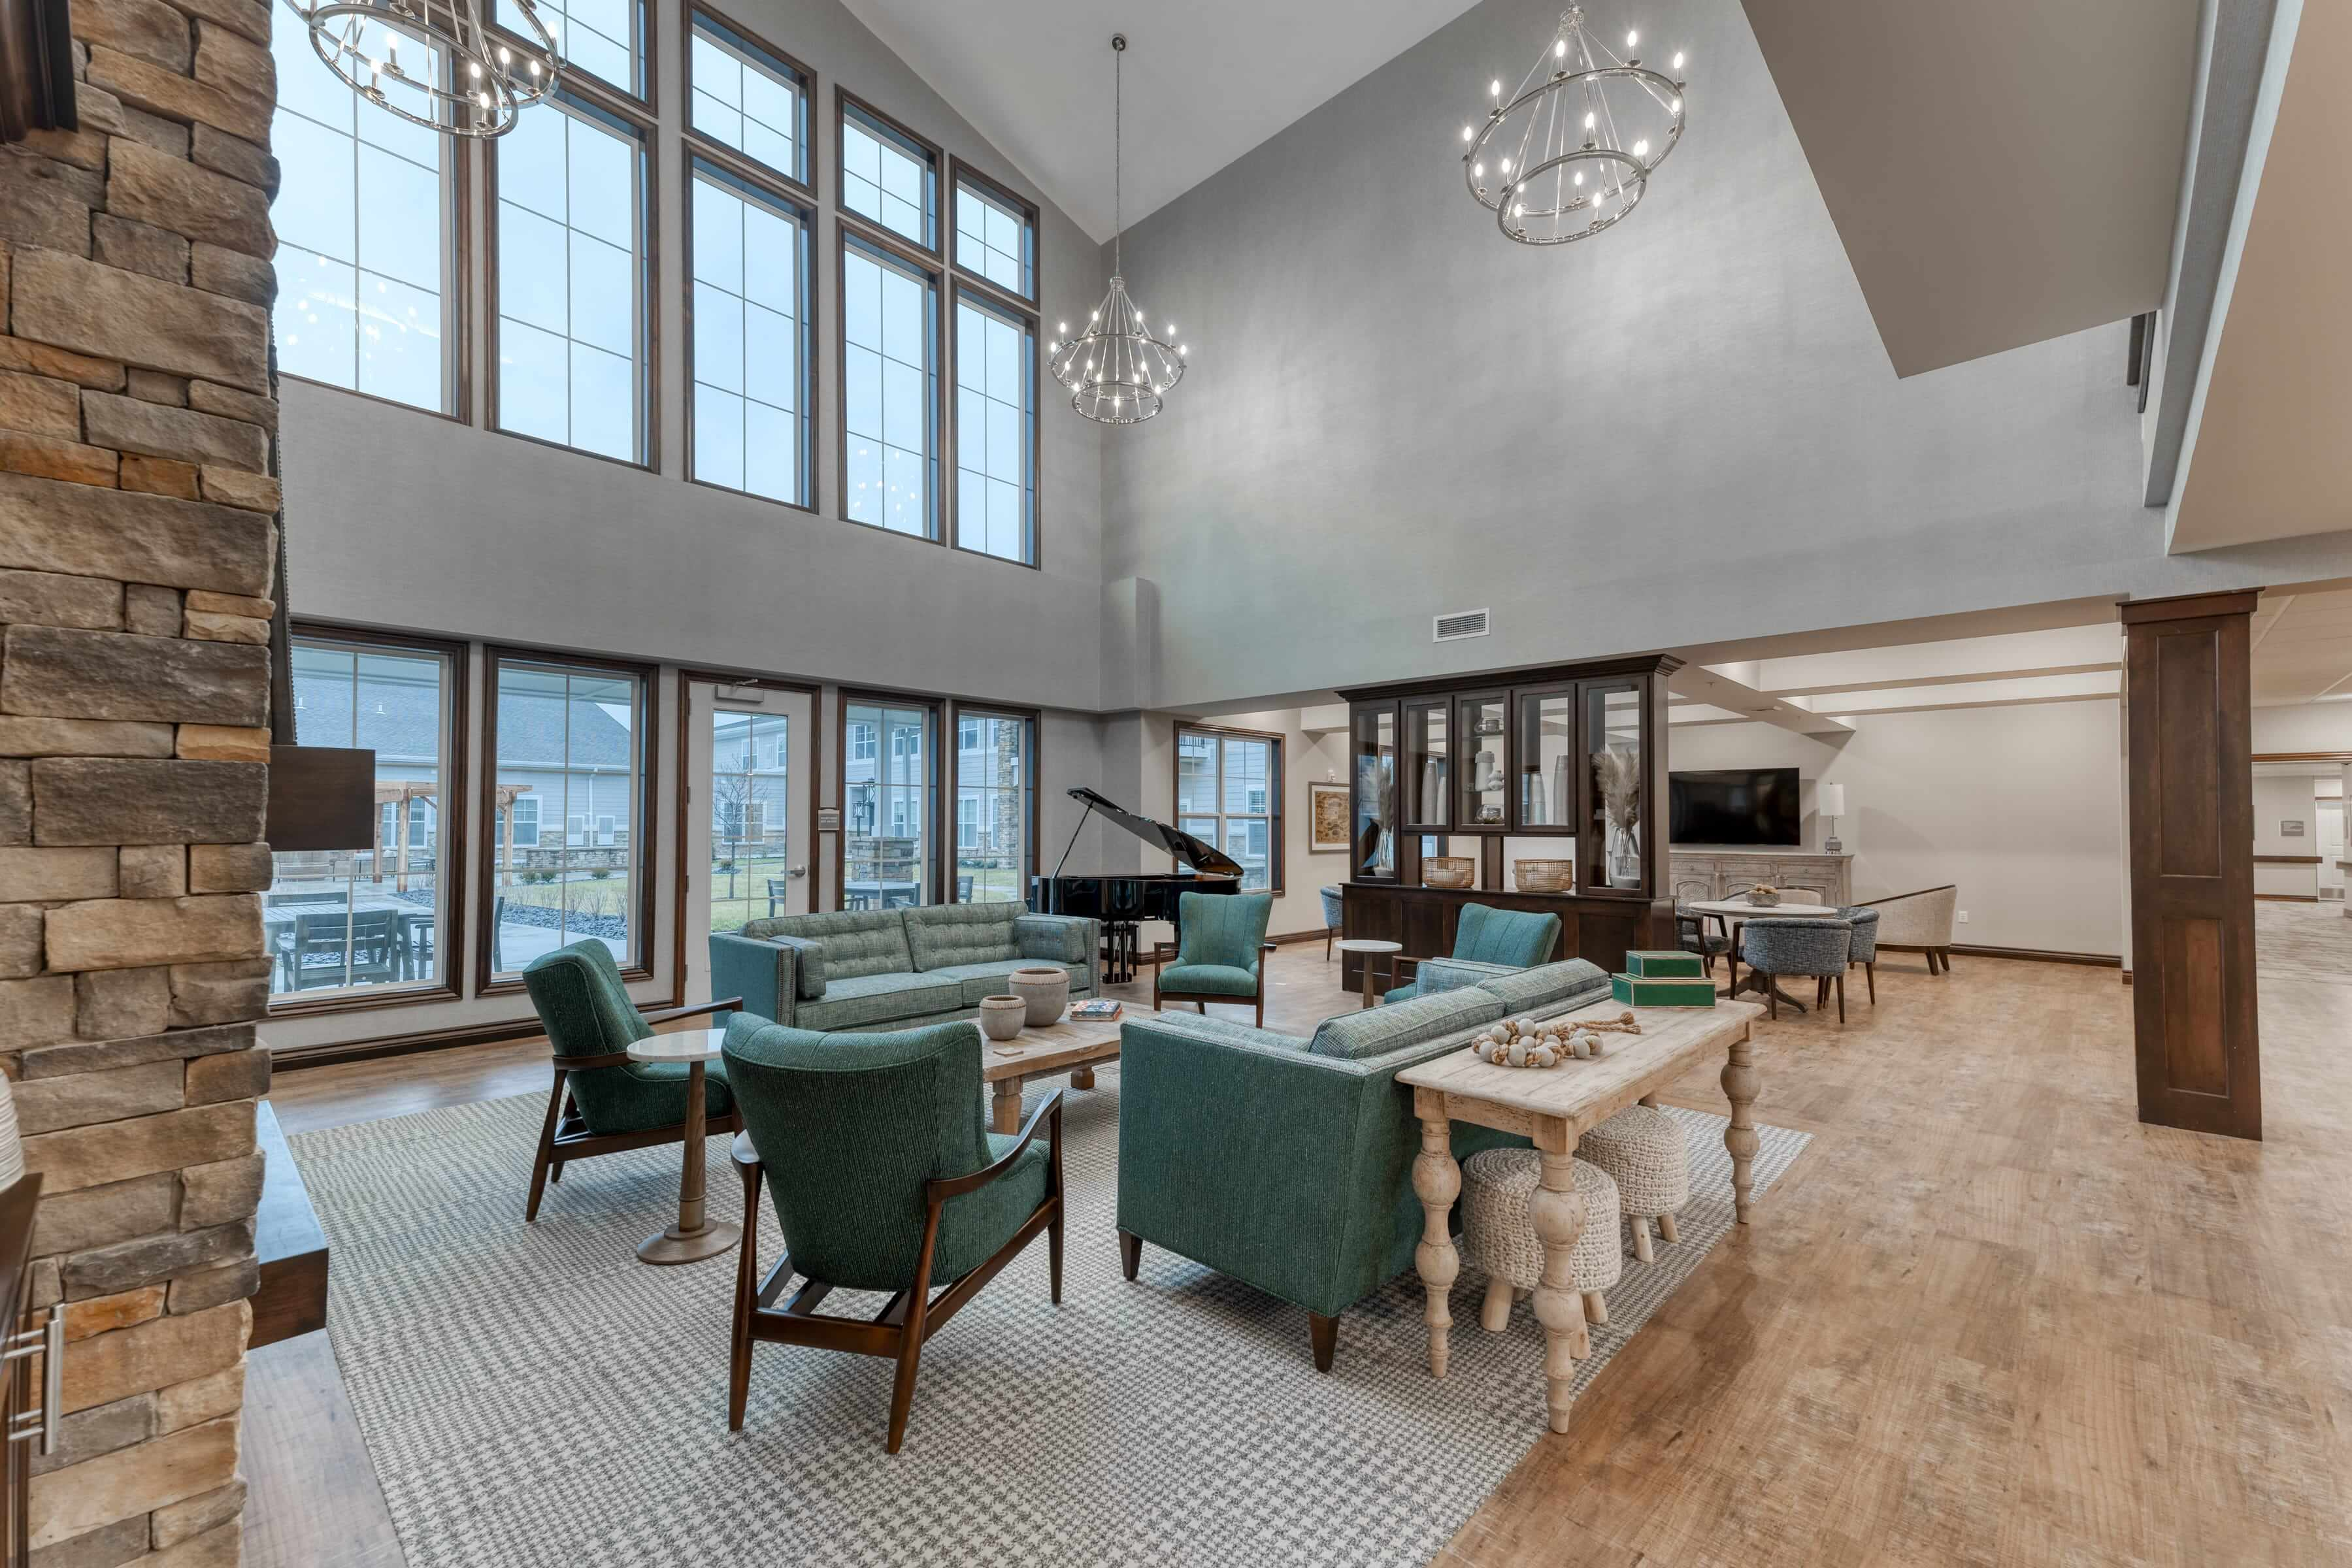 Oversized windows provide natural light to the entire lobby area